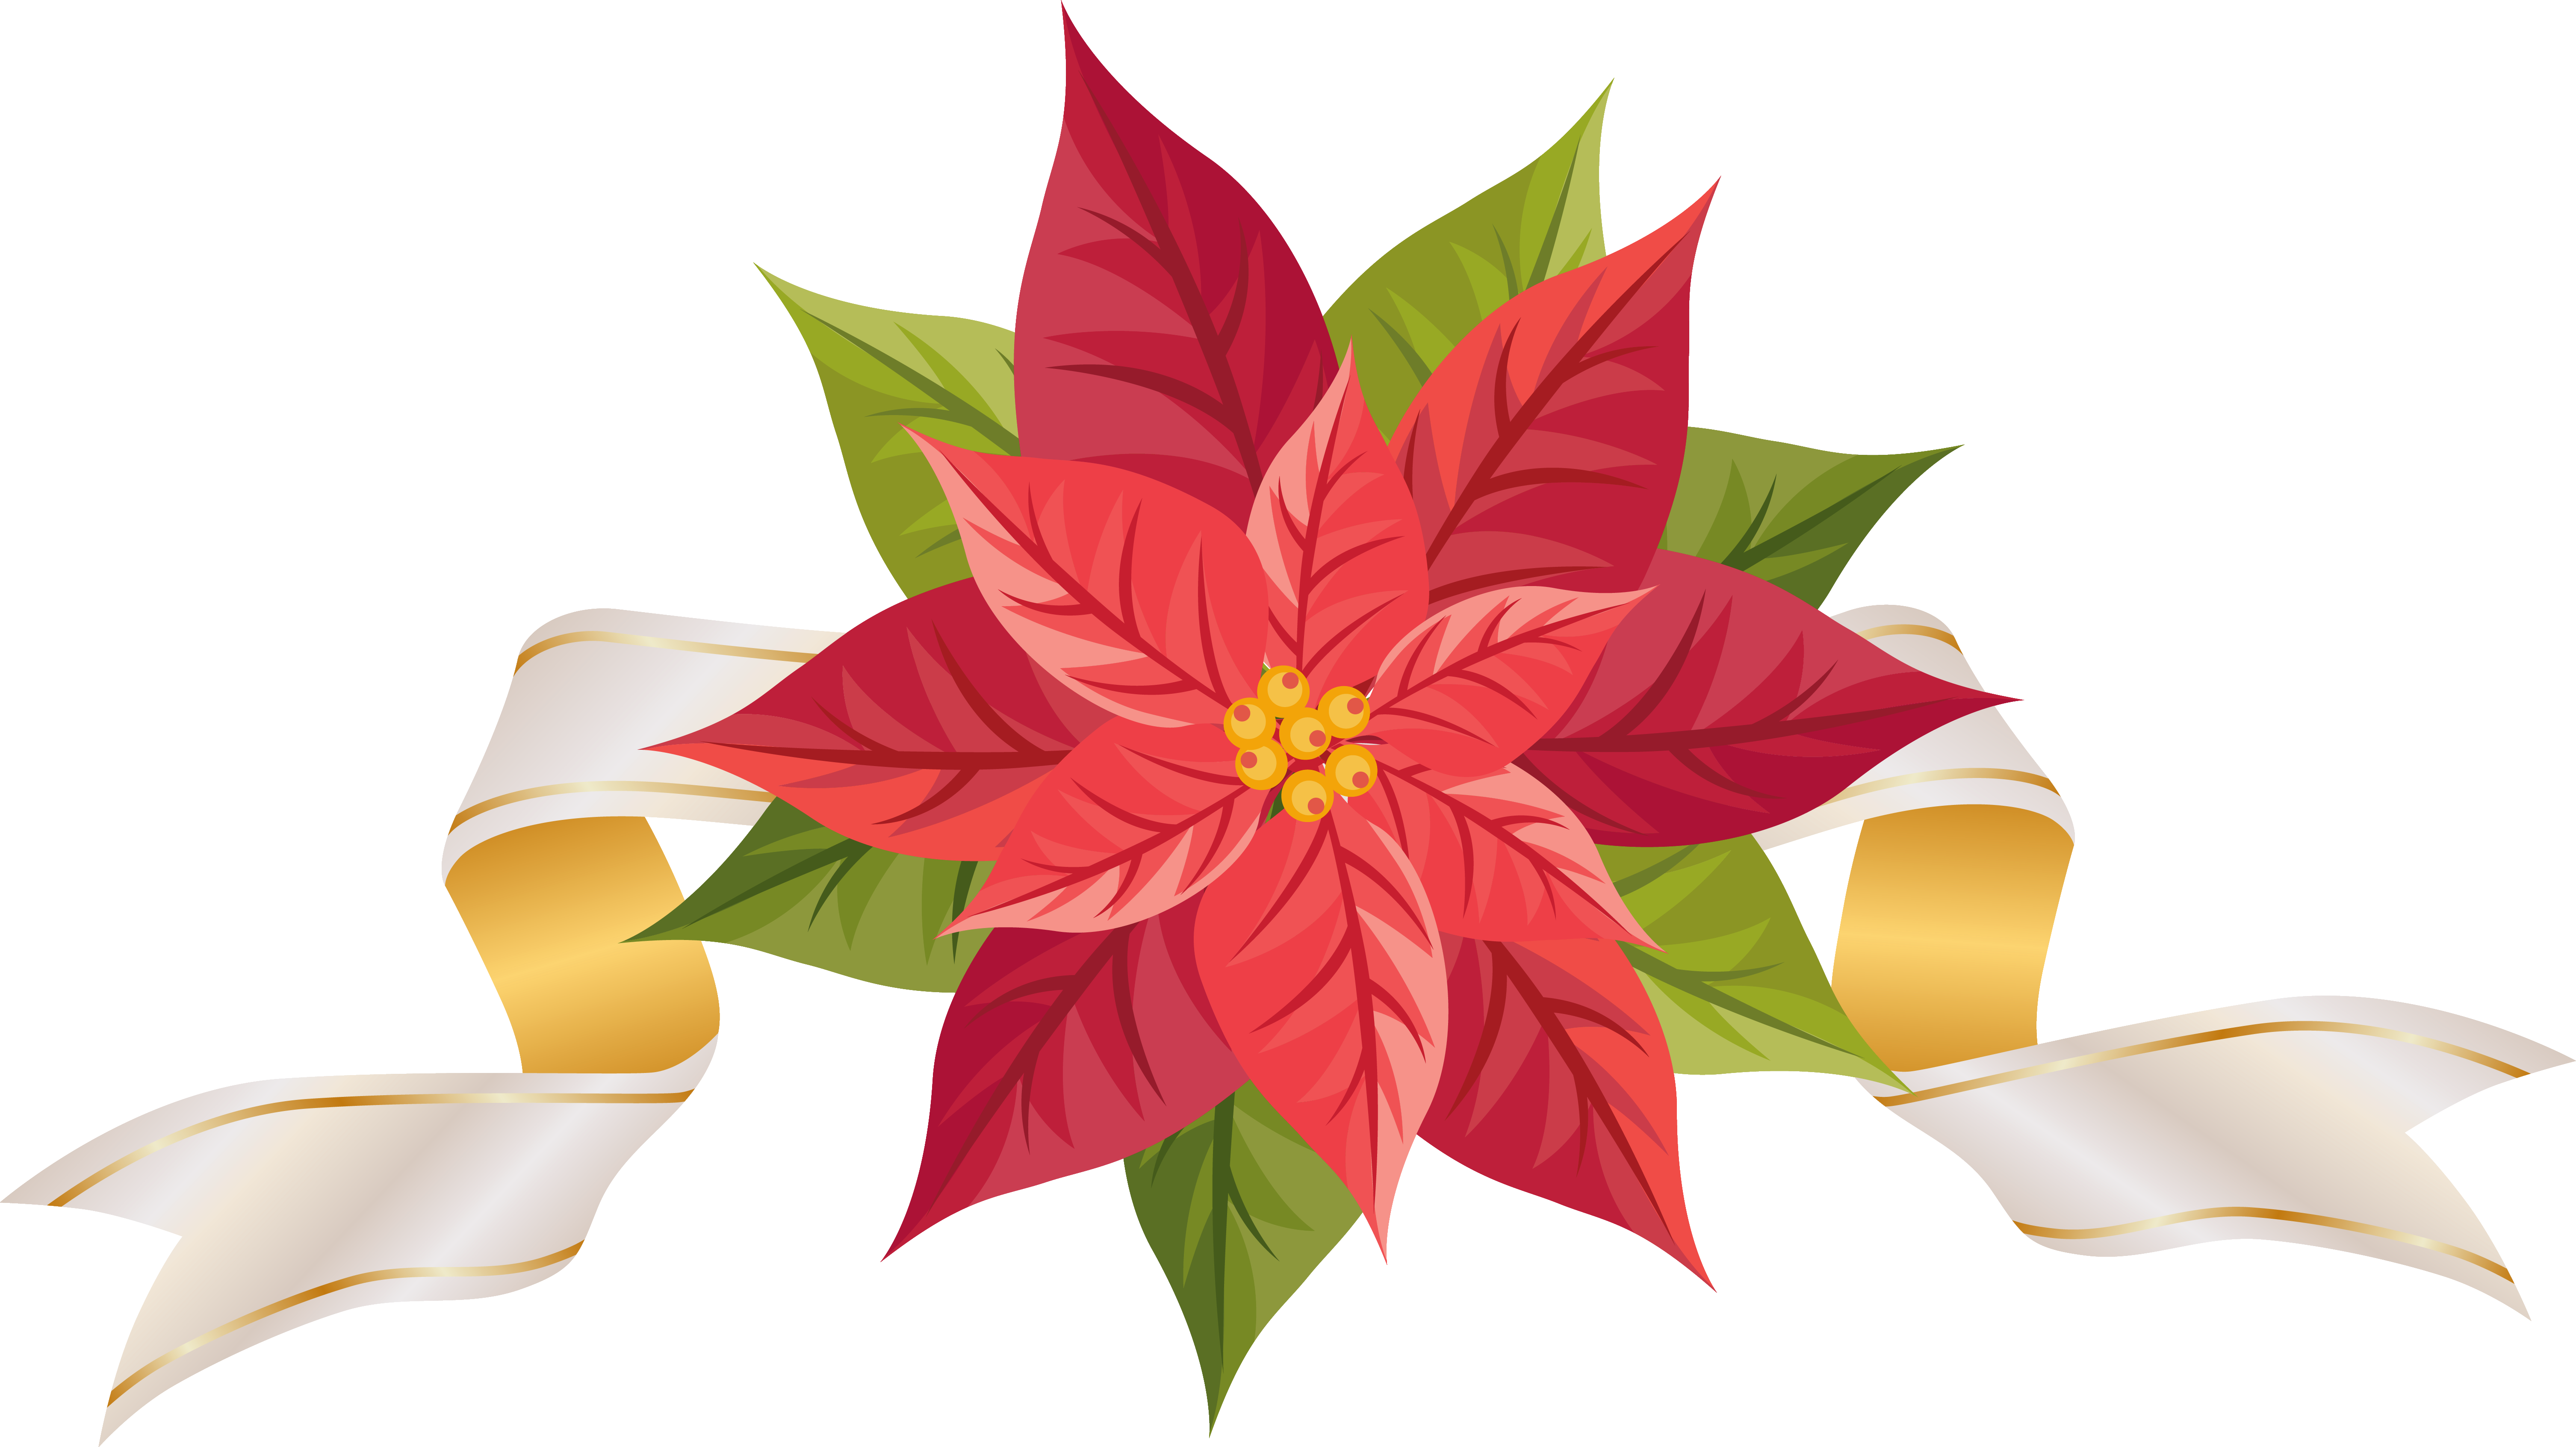 Poinsetta clip transparent background. Poinsettia with ribbon png